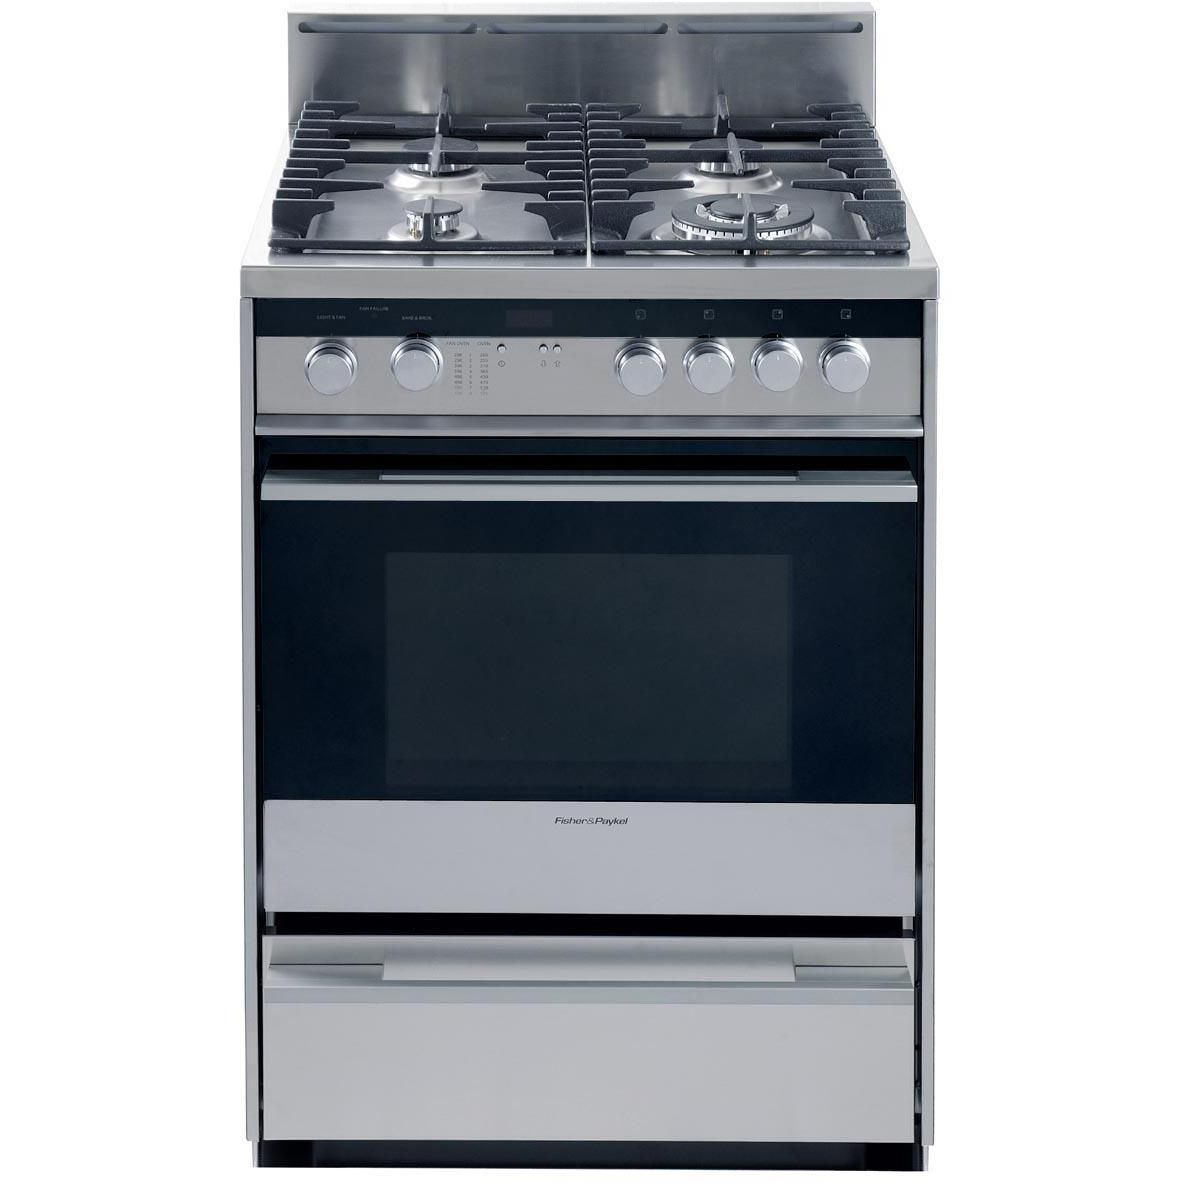 Fisher Paykel 24 4 Burner Gas Range Or24sdmbgx2 Products In 2019 Cooking Appliances Oven Range Convection Cooking